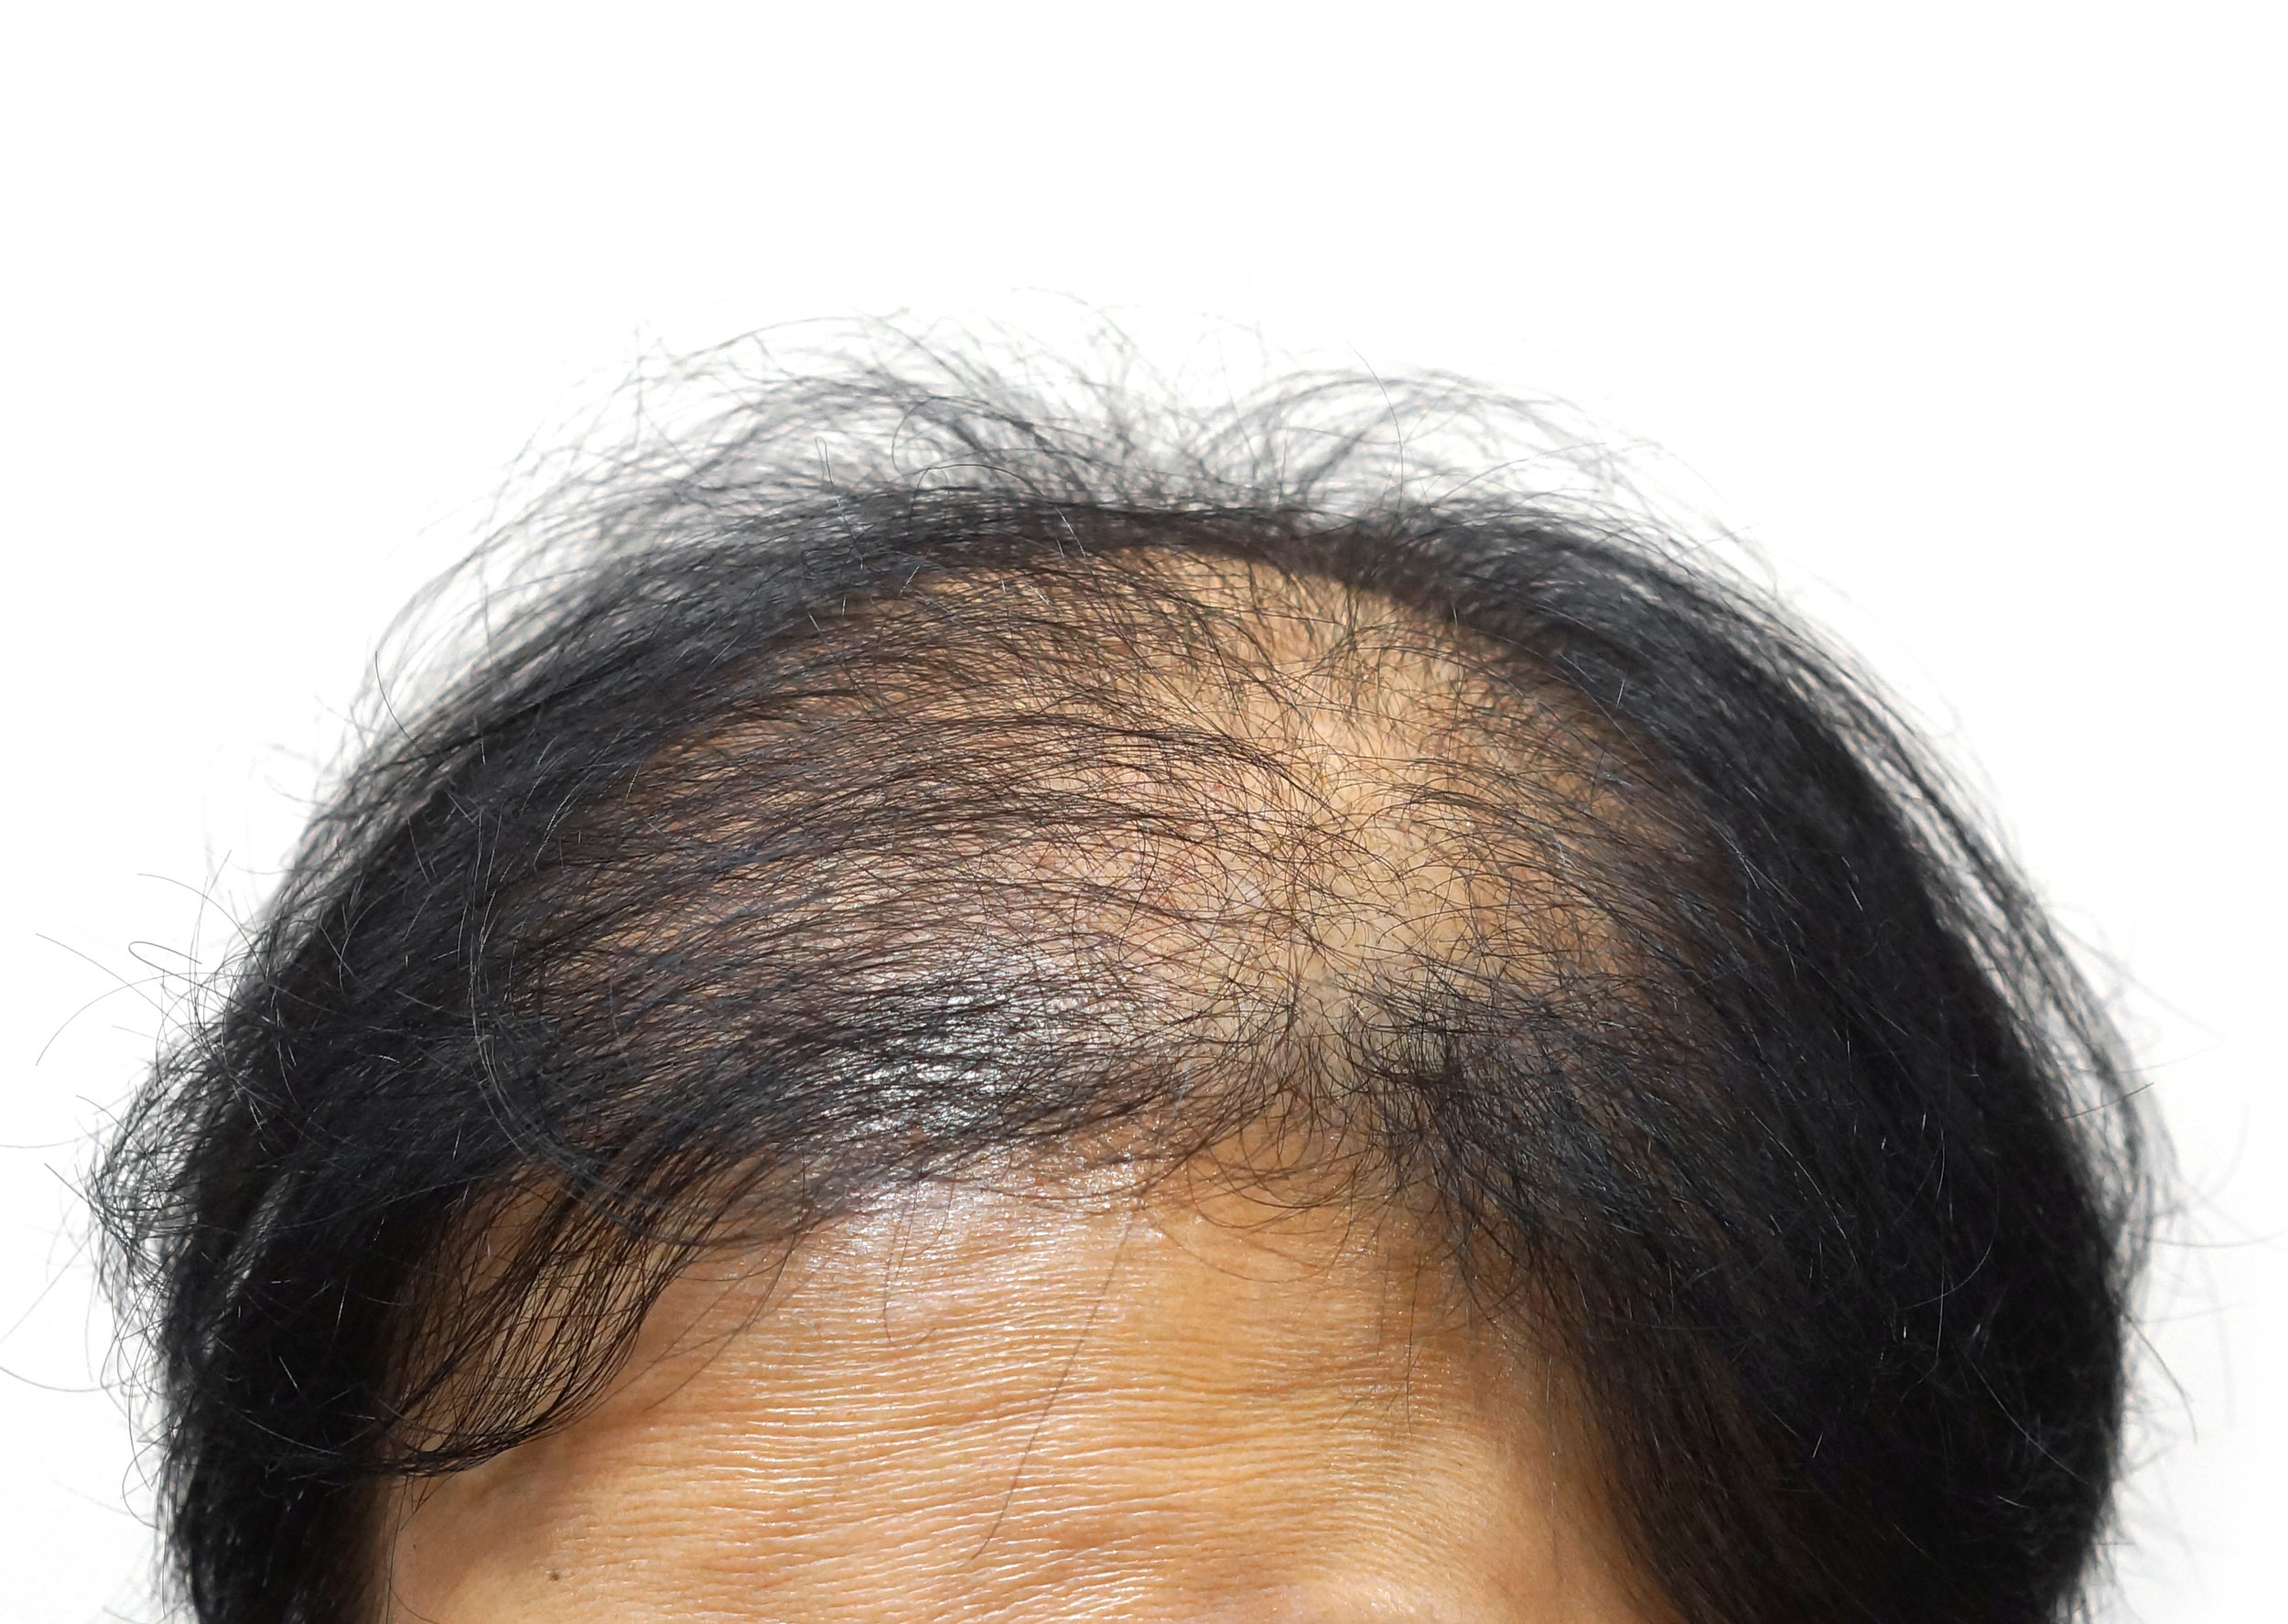 For men and women: Learn about effective medical management of pattern hair loss.